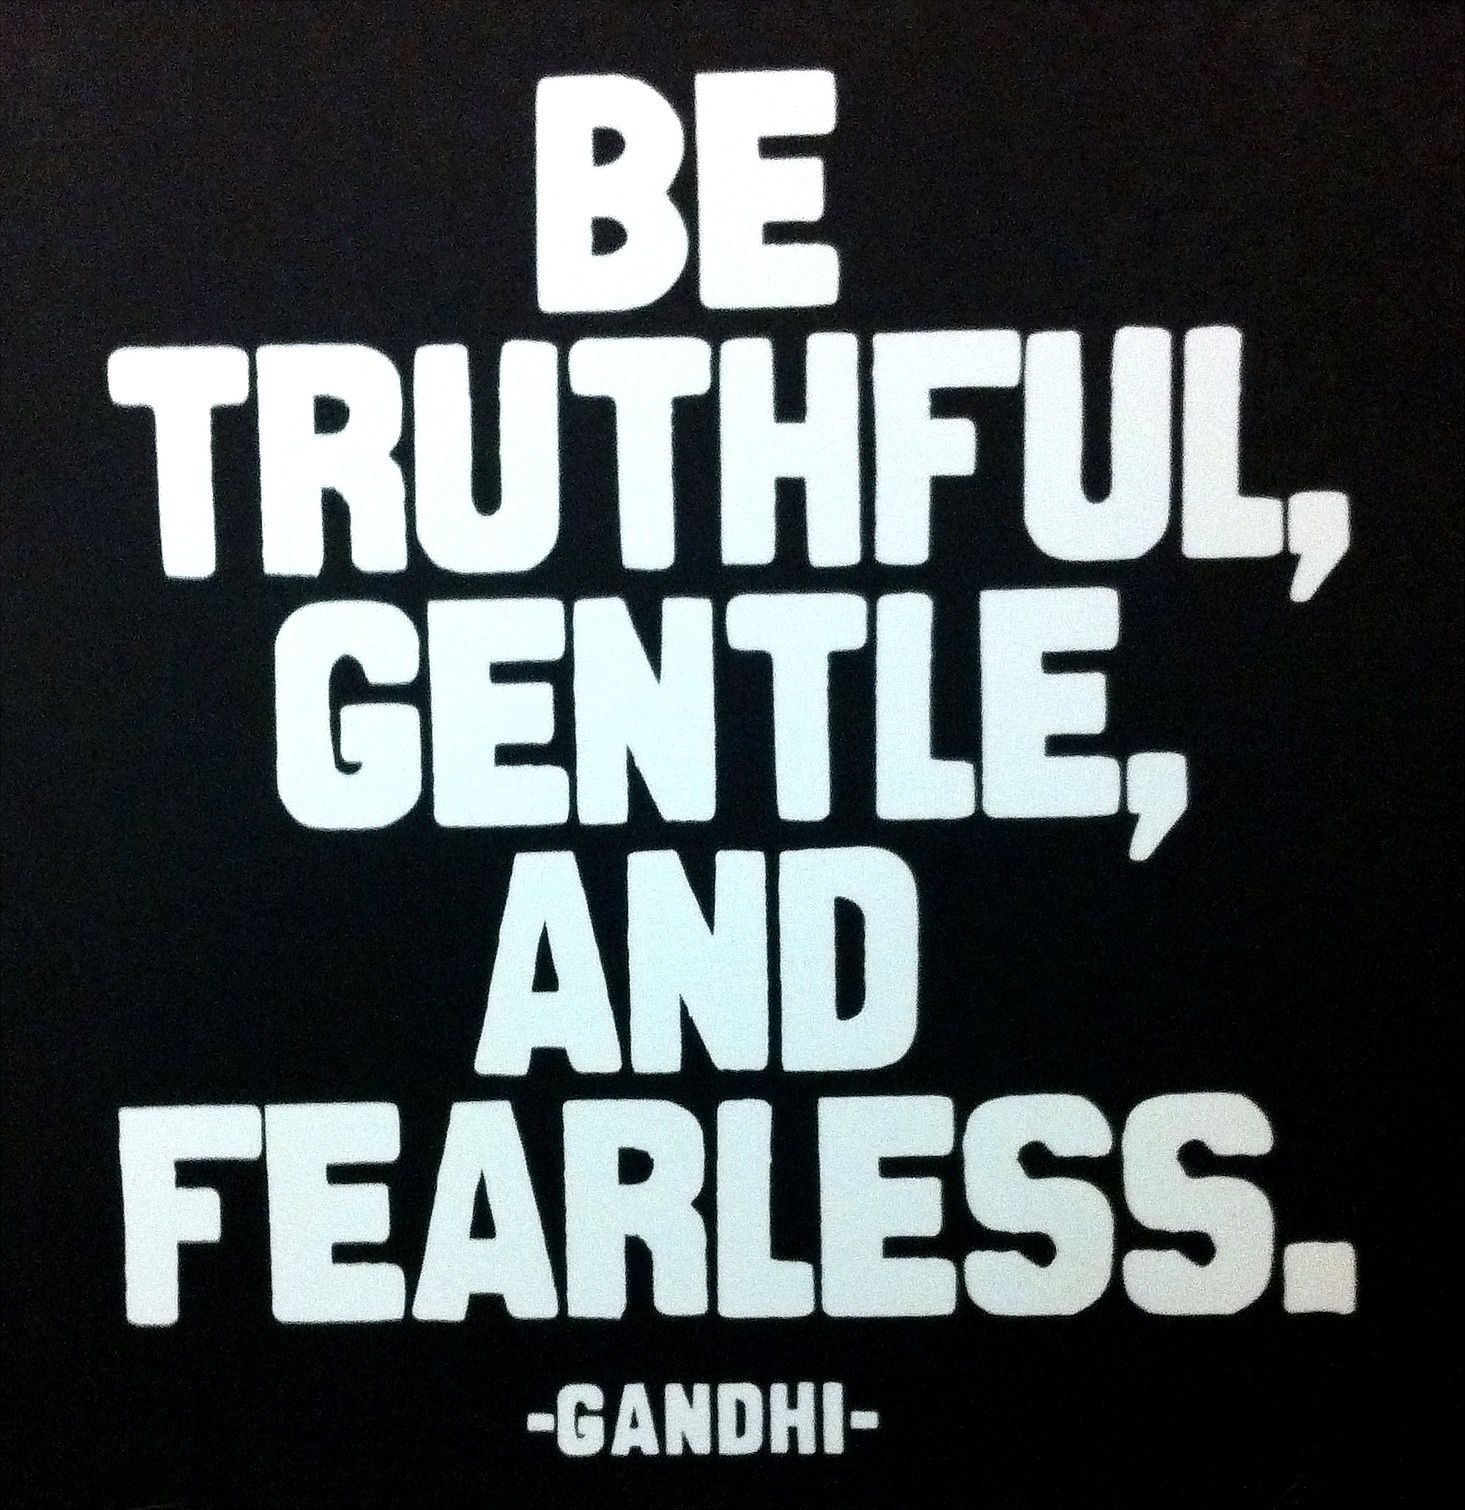 Quotes By Gandhi On Truth. QuotesGram